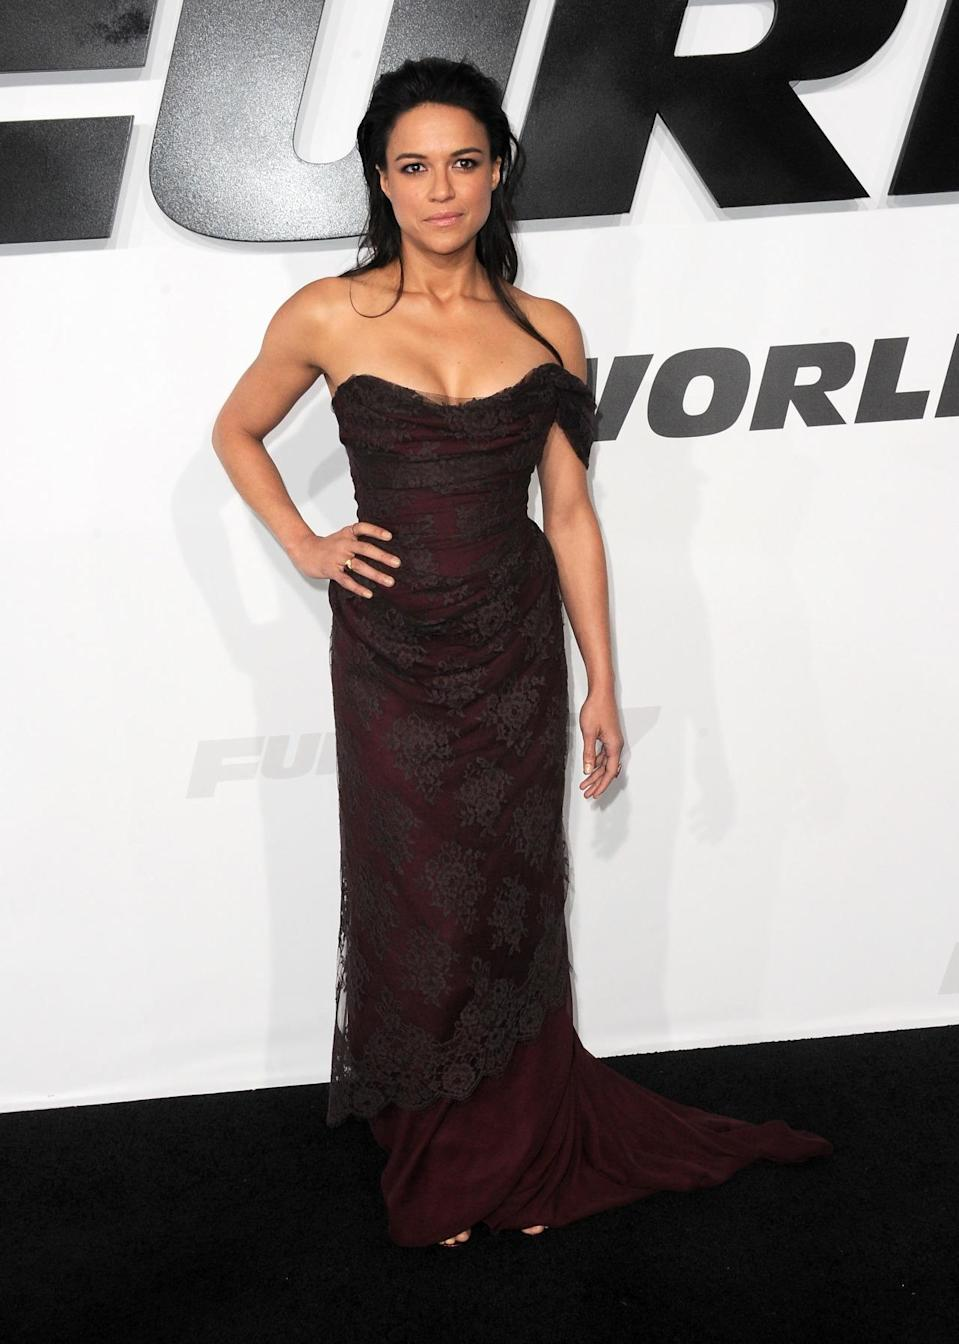 """Michelle Rodriguez in this wine colored gown is definitely a style departure for the actress — but one that should be repeated regularly. The strapless Vivenne Westwood dress is fitted, featuring the designer's signature corseted top, and the lace overlay adds some """"Downton Abbey""""-inspired elegance."""